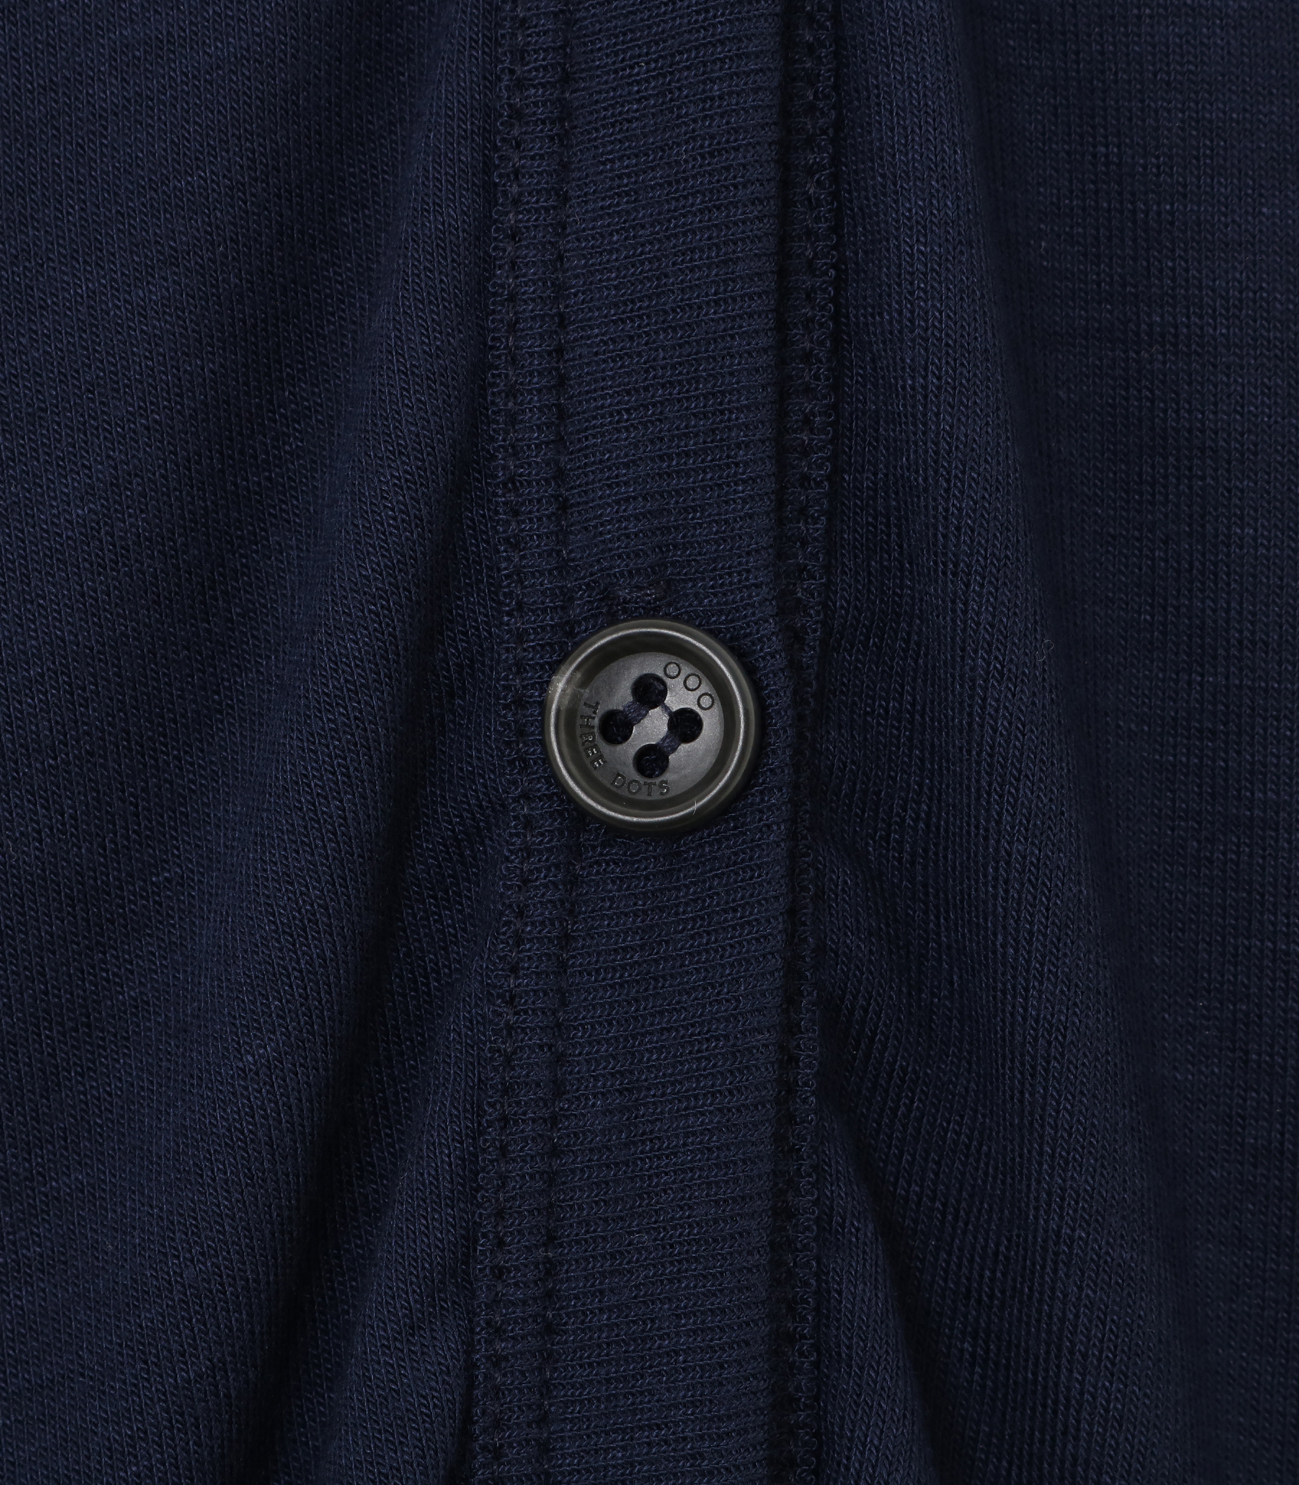 luxe rib button up cardigan 詳細画像 night iris 5